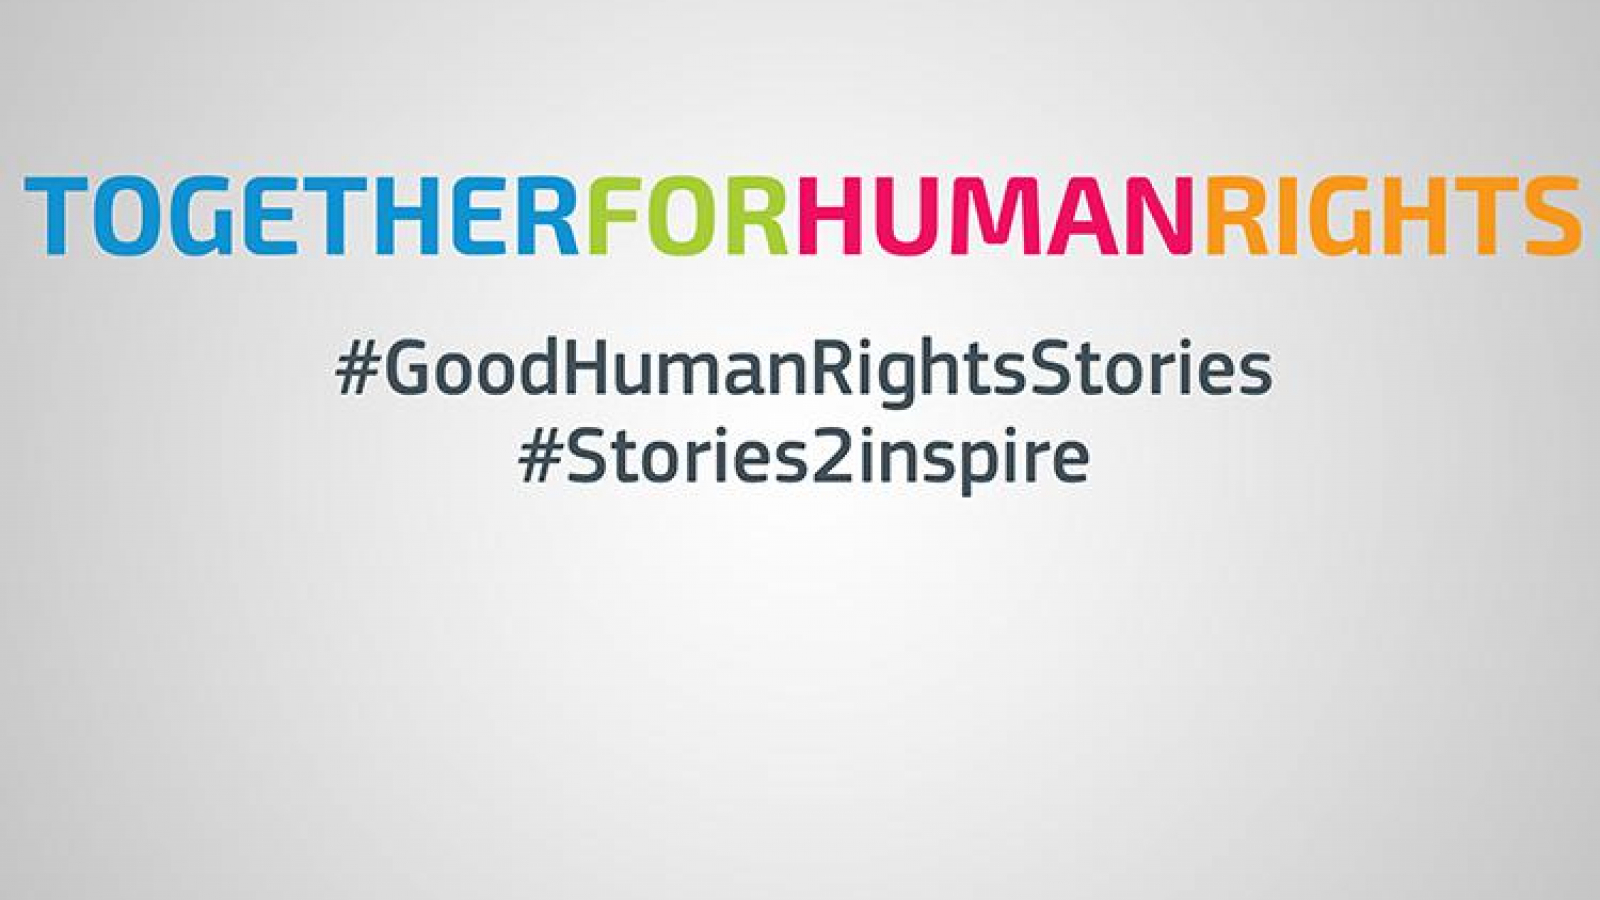 Good Human Rights Stories coalition launched